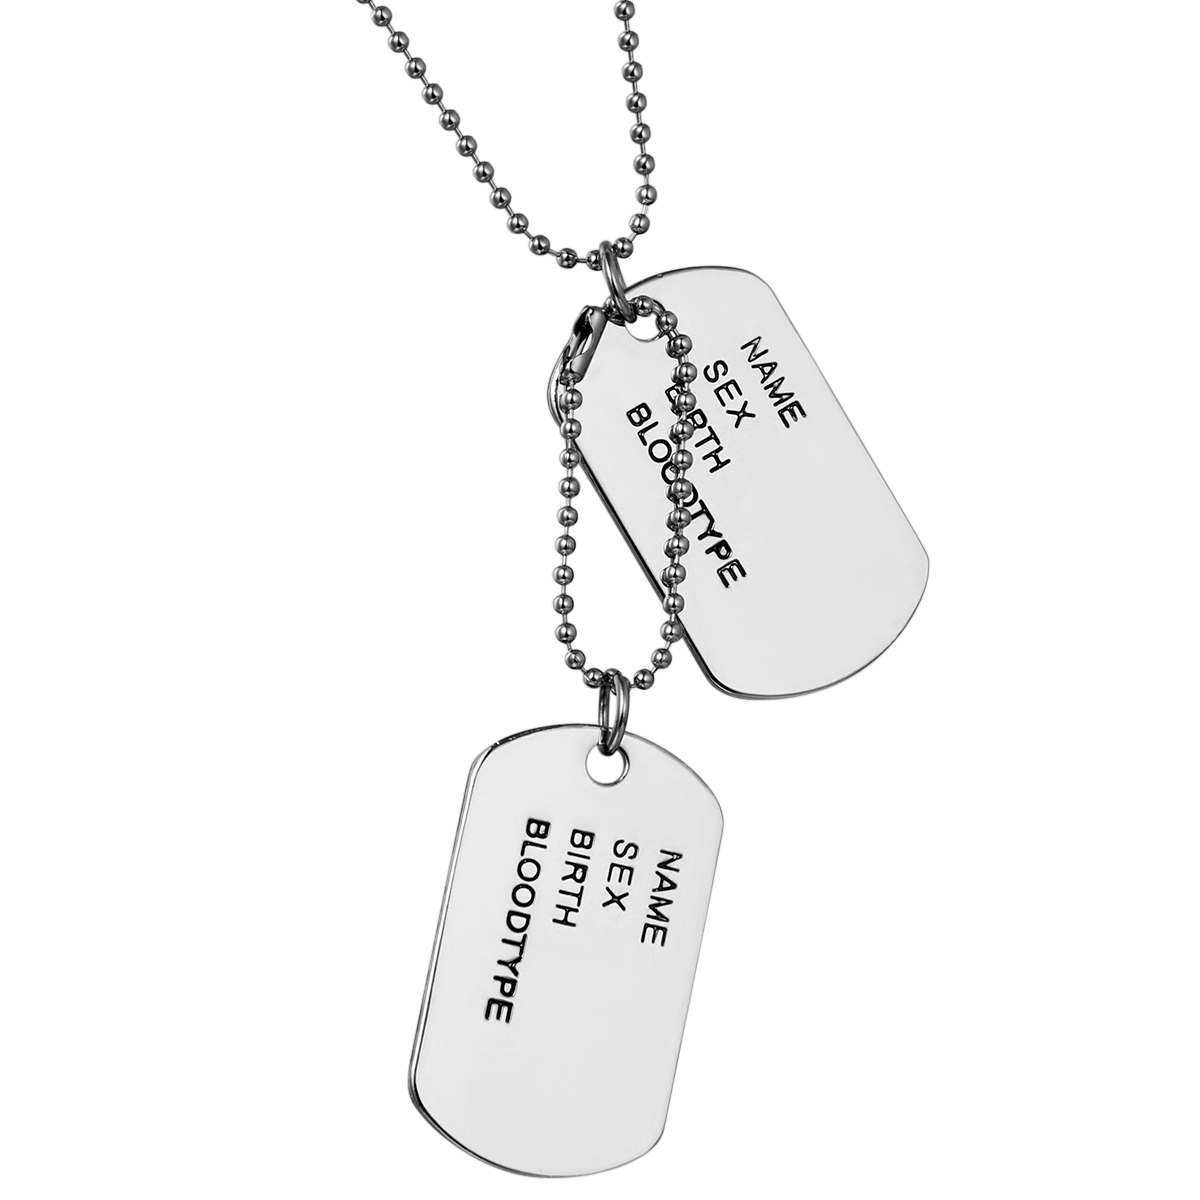 forever gift stainless my pendant product to products military valentines couple tresarbox steel image love present day necklace